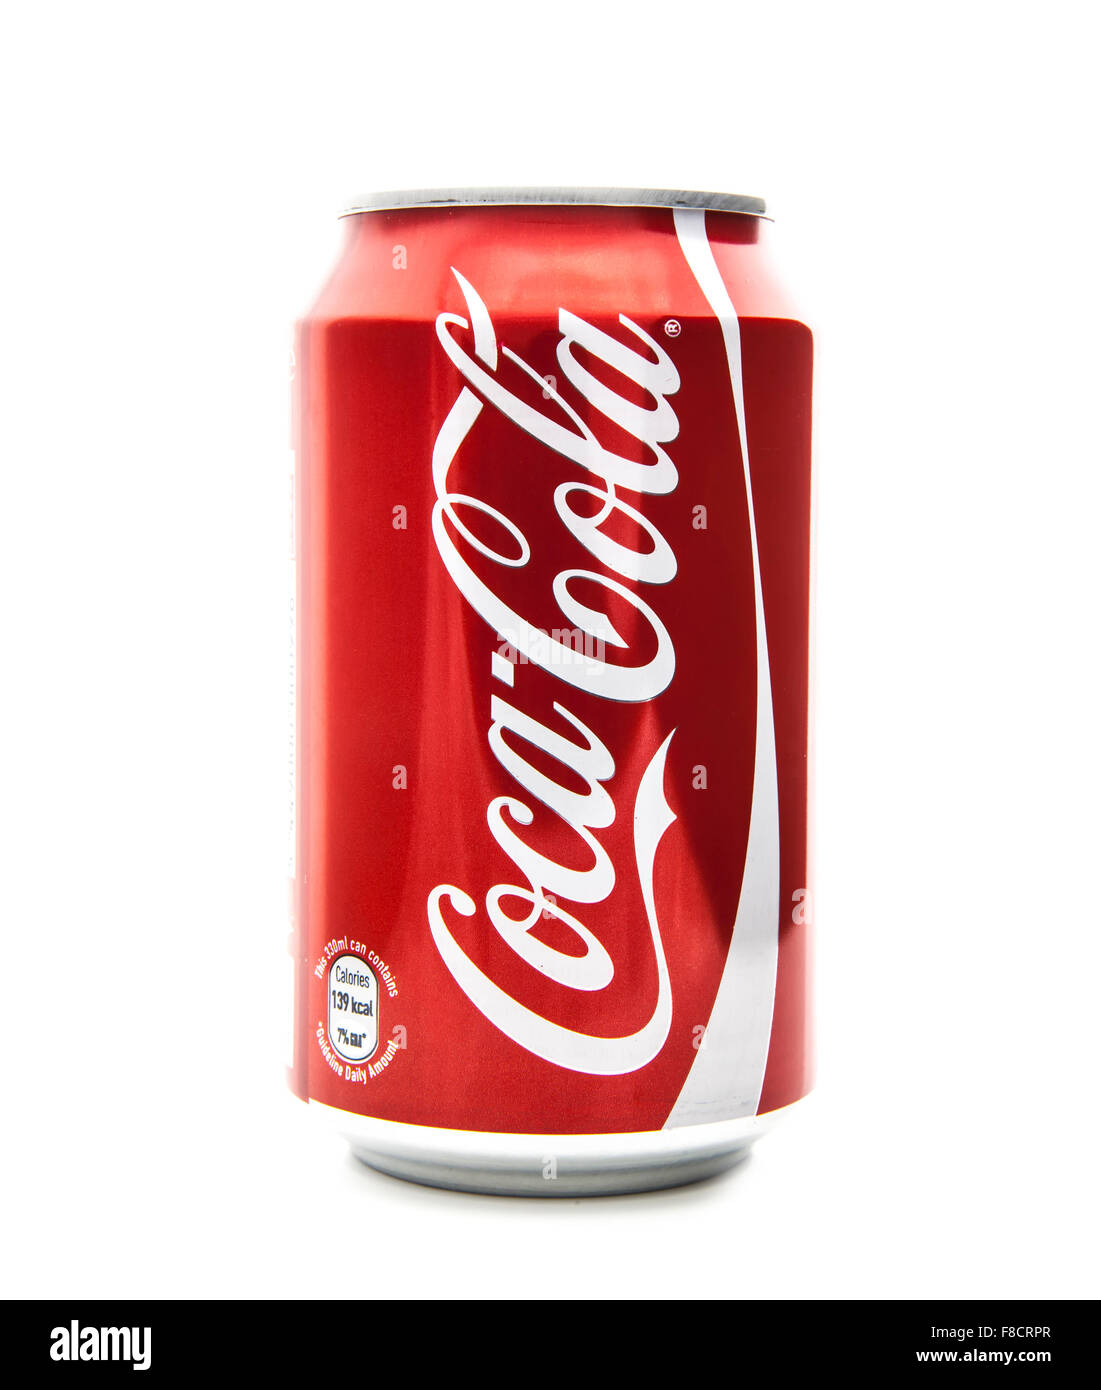 Can of  Coca-Cola on a white background - Stock Image